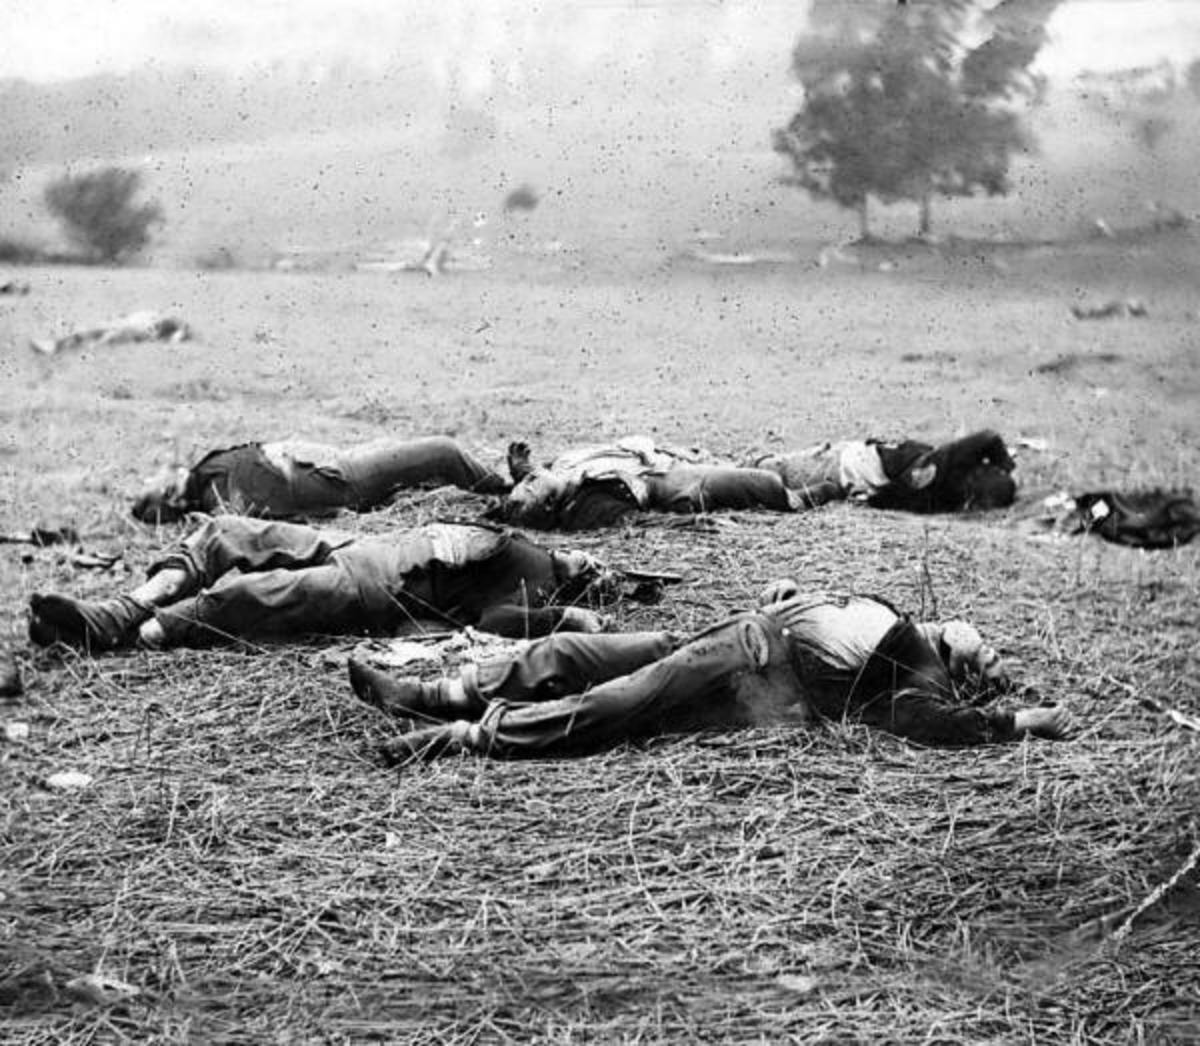 Union dead at Gettysburg, PA. By the time of this photograph, these corpses were on the field for about three days. Note the blackened skin and bloated conditions of the abdomen, limbs, and faces